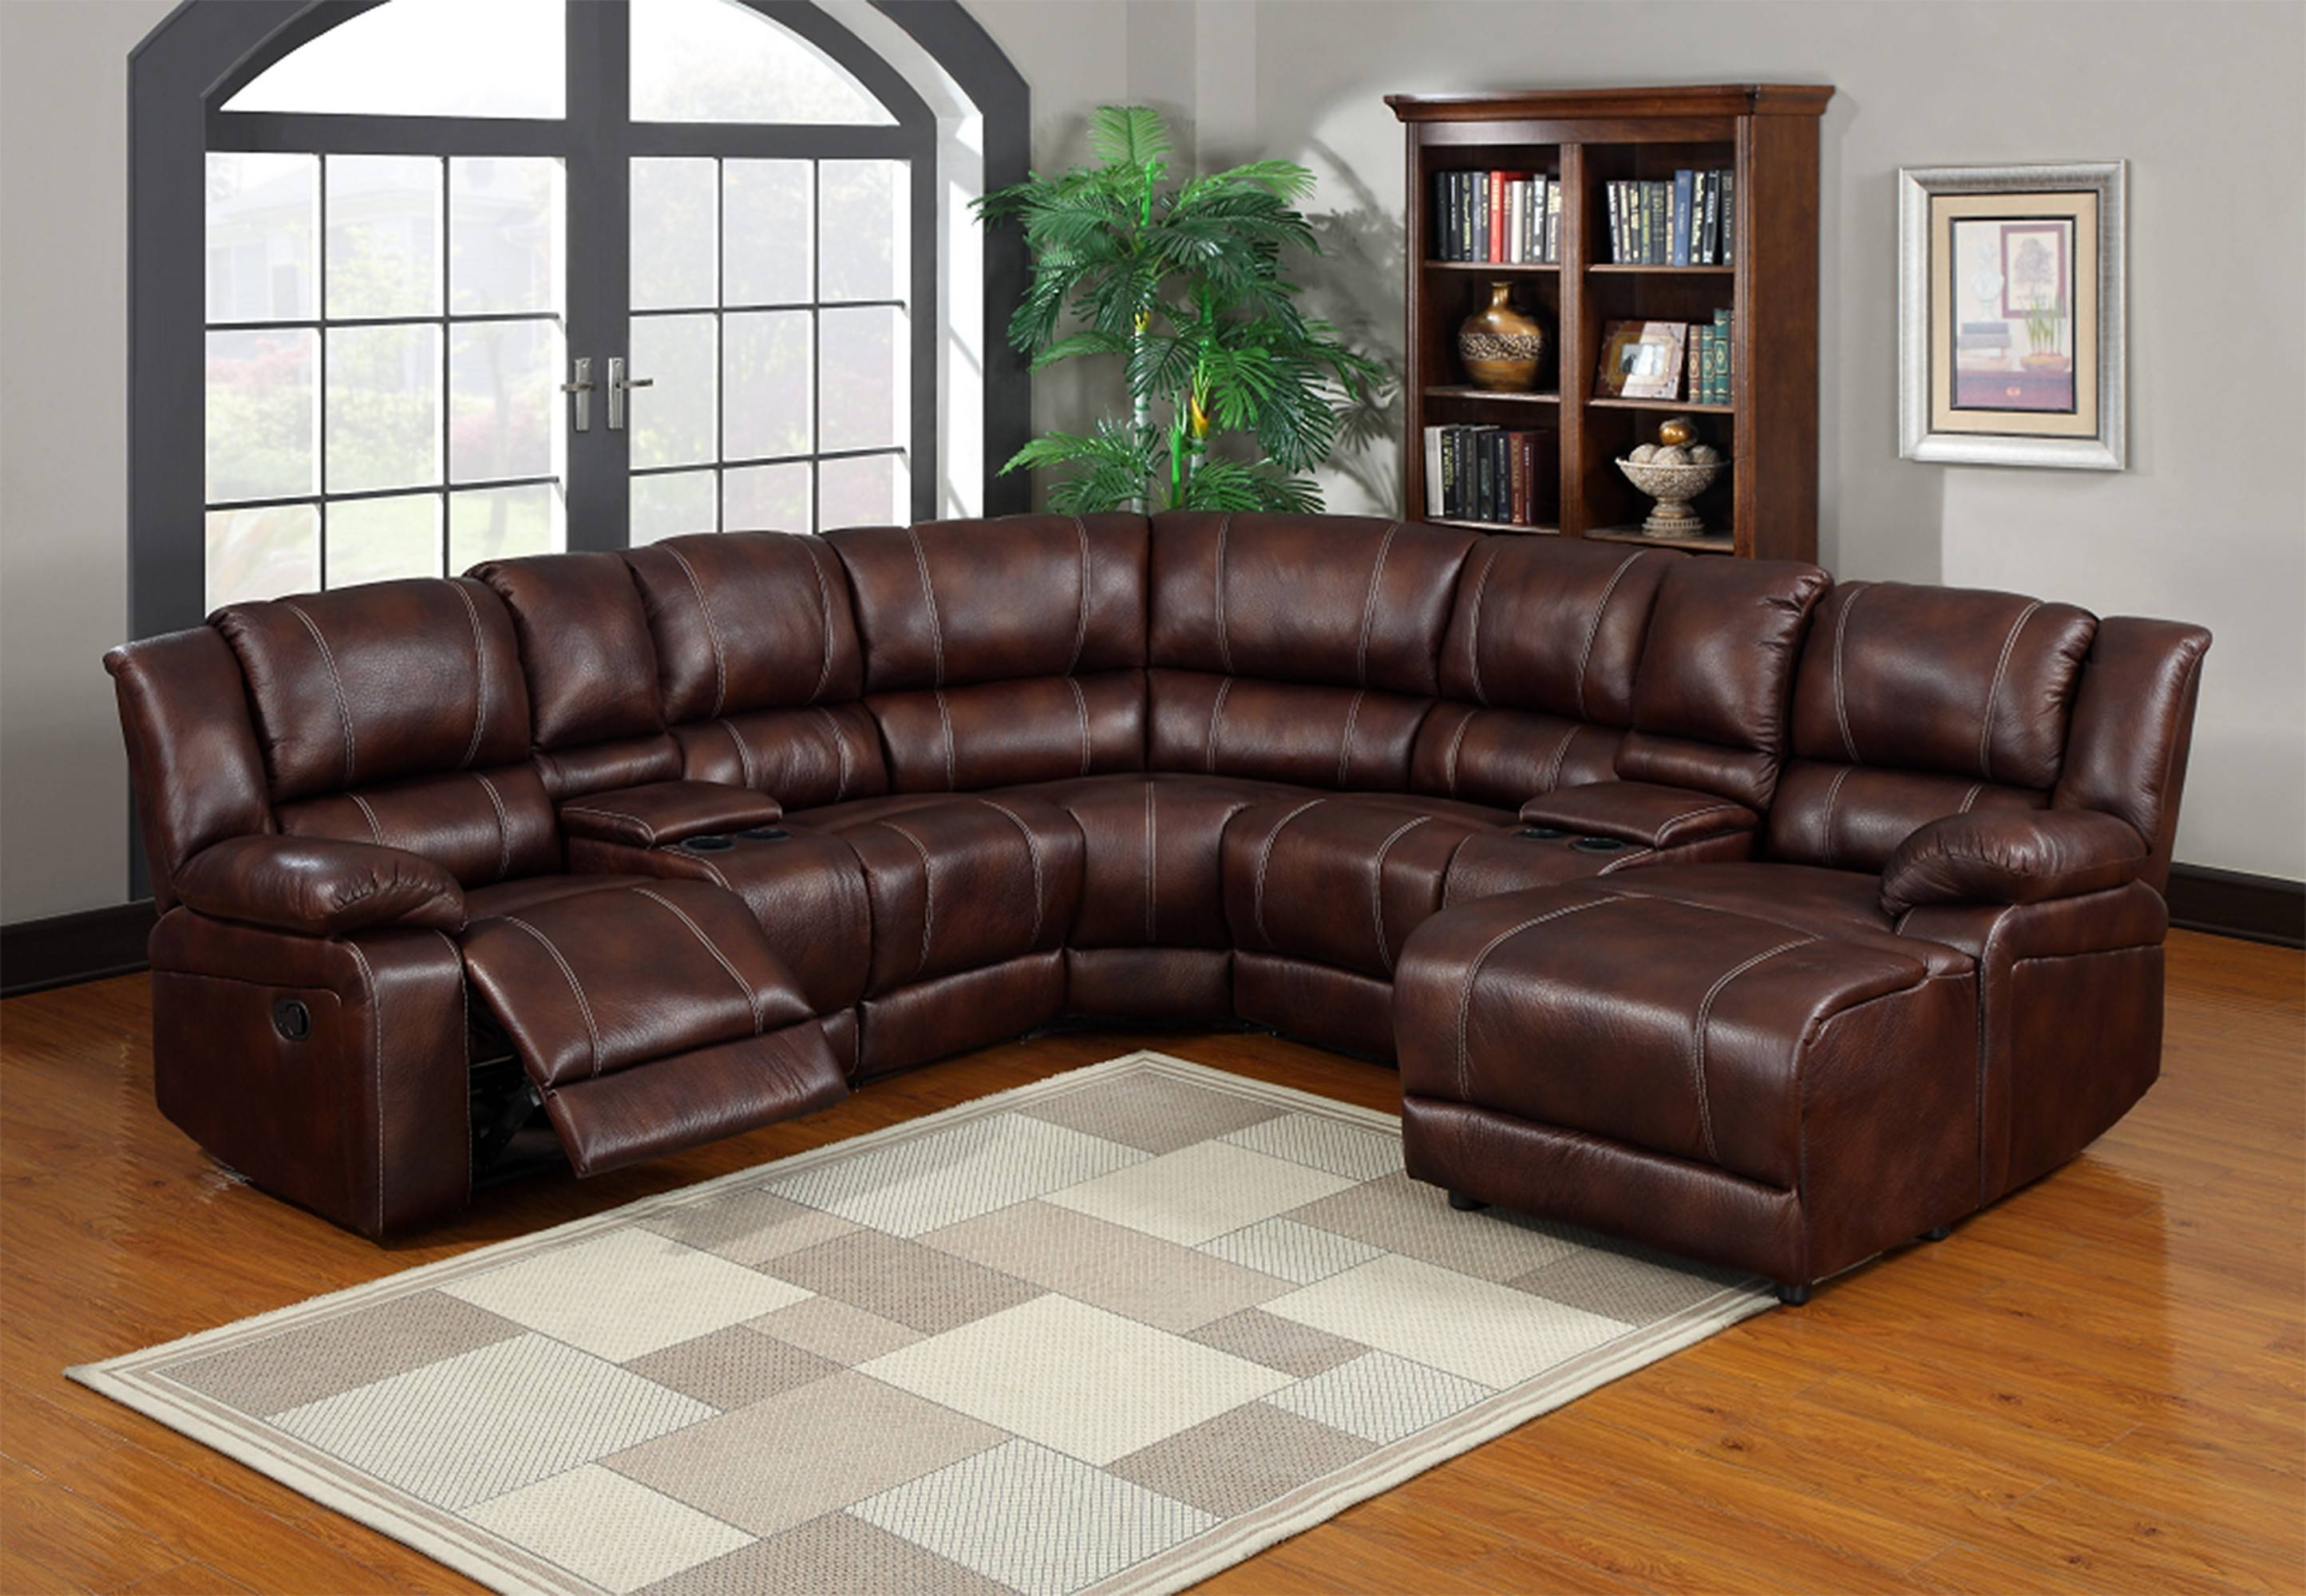 Leather Motion Sectional Sofa - Hotelsbacau intended for Motion Sectional Sofas (Image 12 of 30)